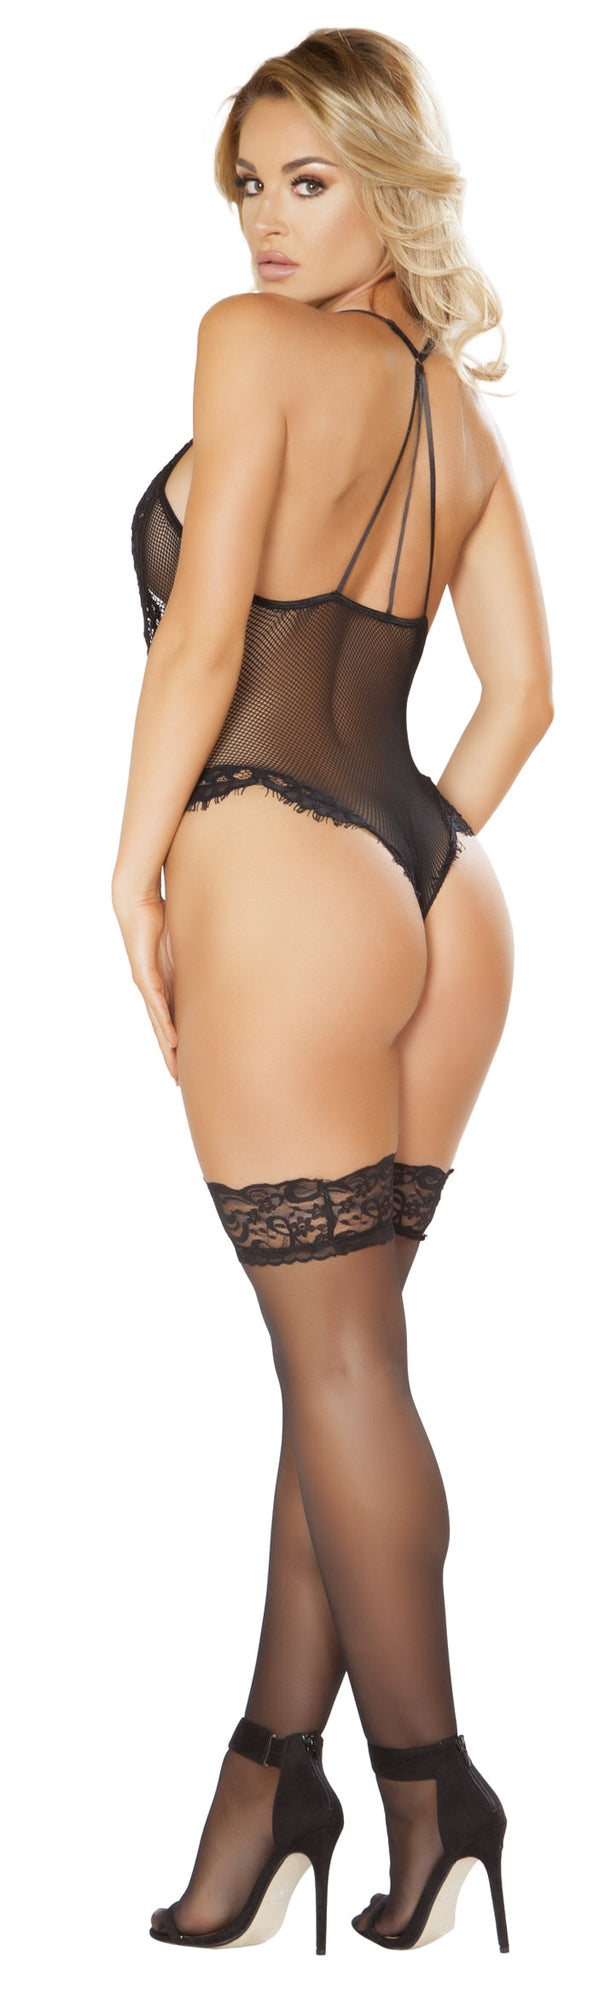 RMLI243 Sheer teddy black back